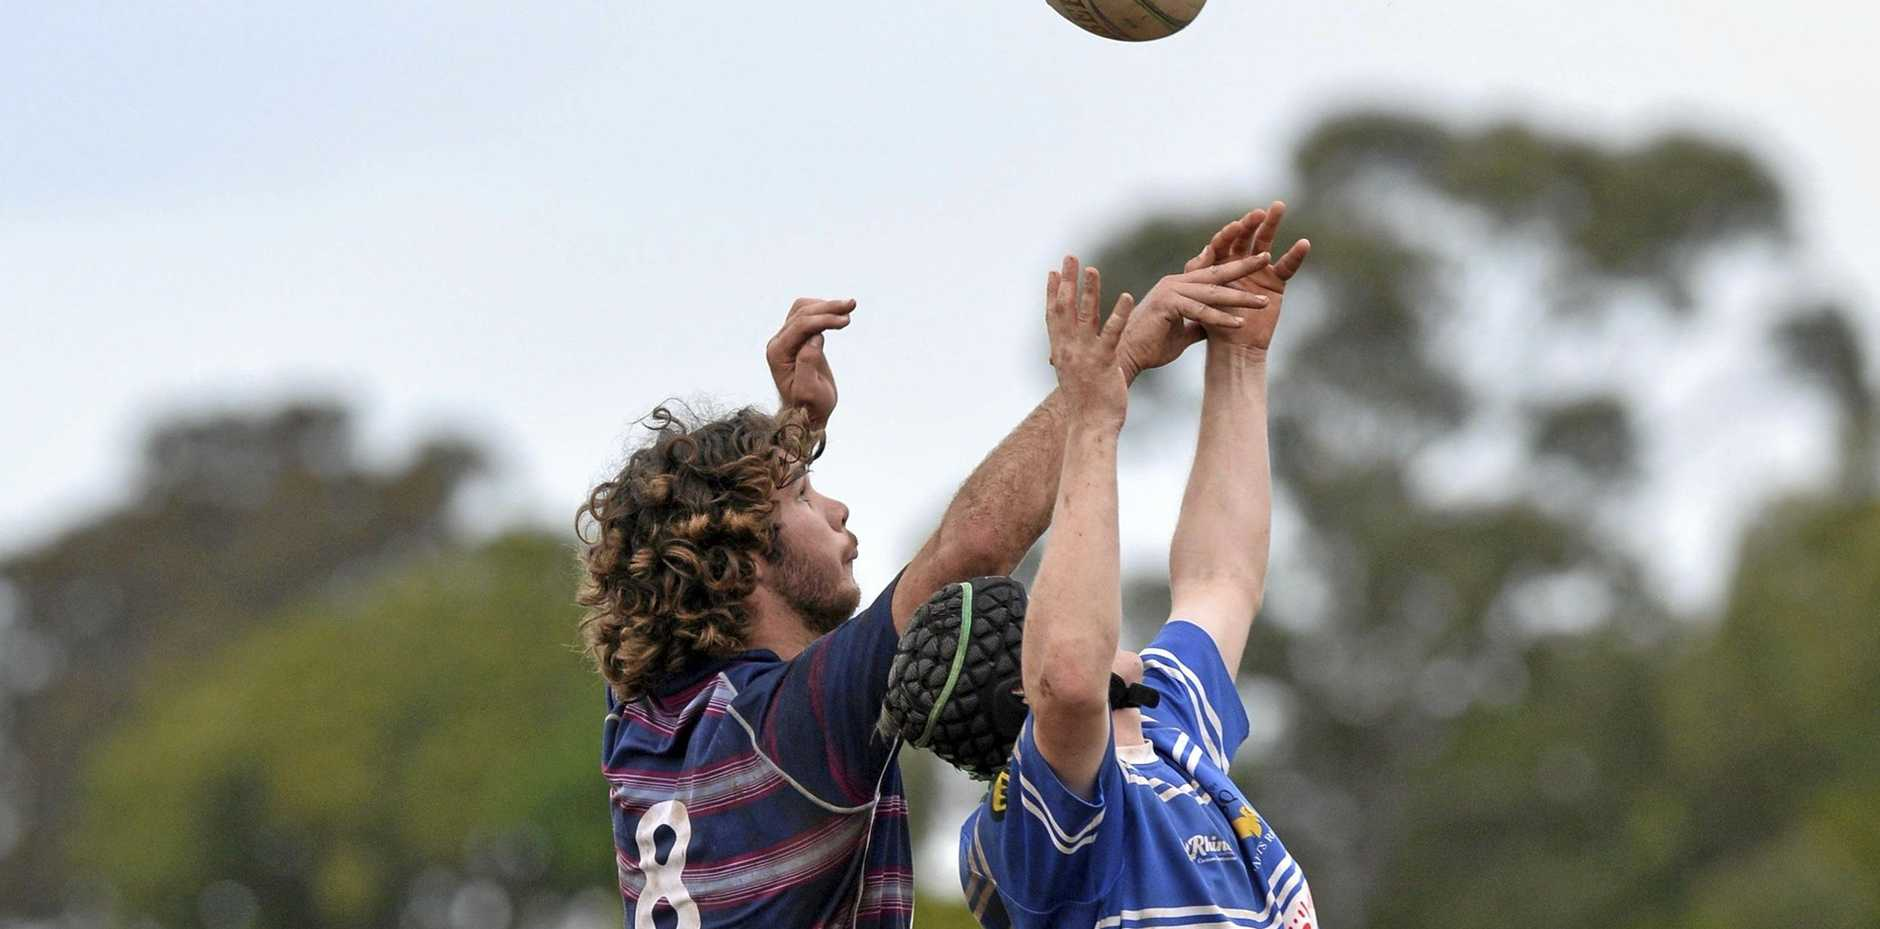 Toowoomba Bears and USQ lock line-out horns in their round-11 Risdon Cup match last season at USQ Oval. The traditional rivals meet today at Heritage Oval.